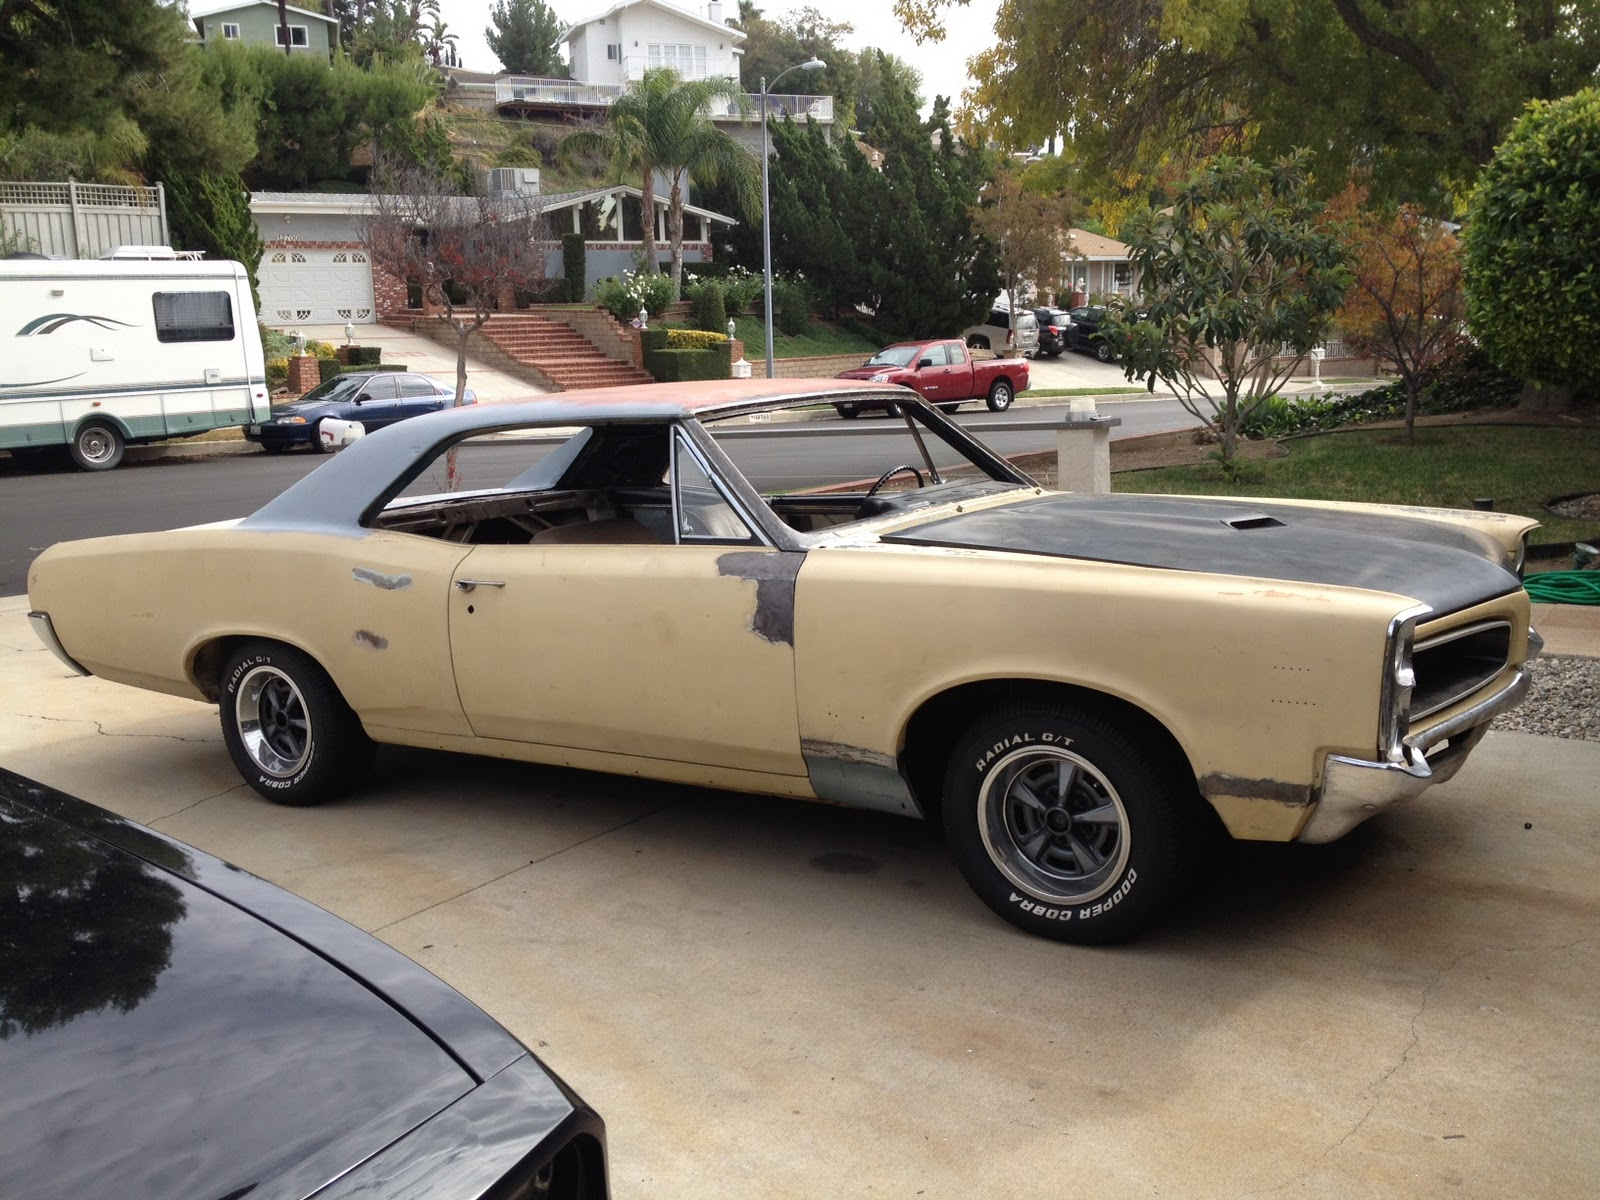 gto project for sale 1970 pontiac gto classic cars for sale find new and used 1970 pontiac gto classics for sale by classic car dealers and private sellers near you project car.